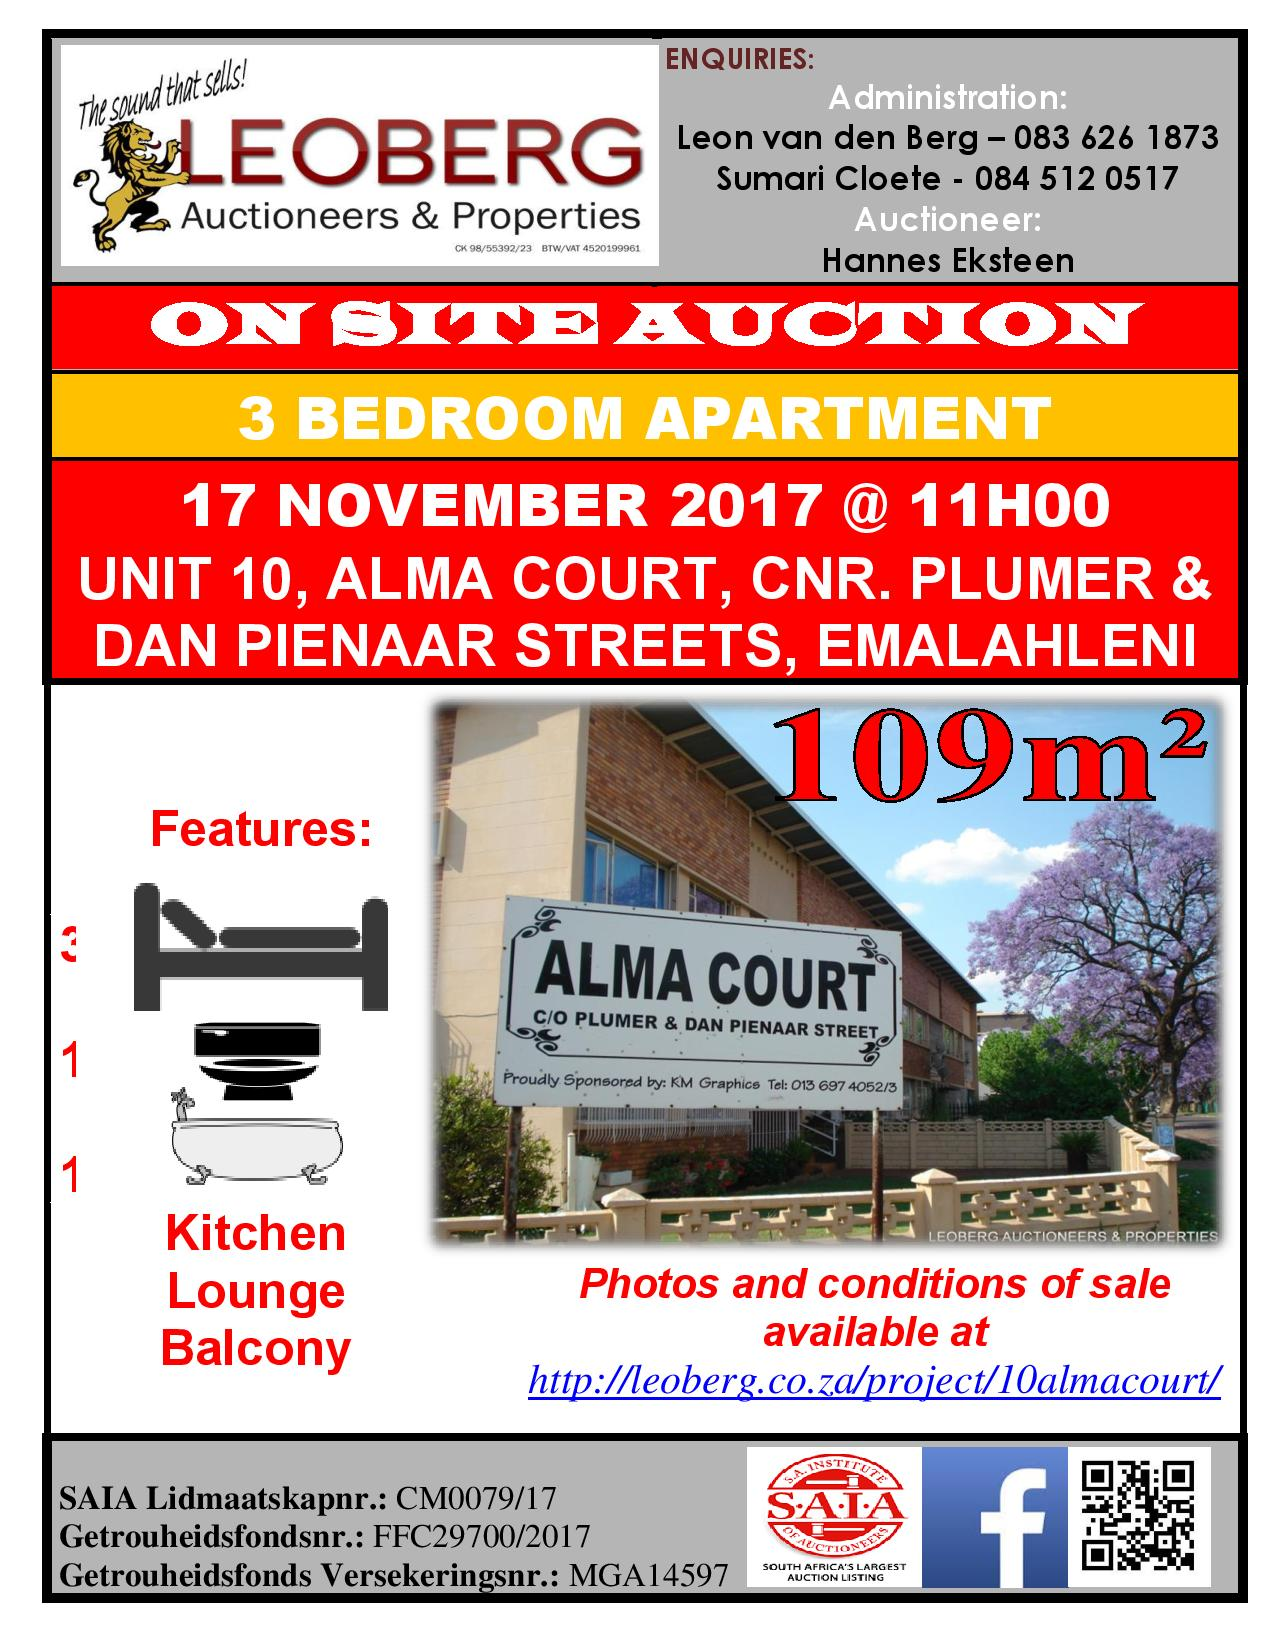 3 Bedroom Apartment on Auction - 17/11/2017 @ 11h00